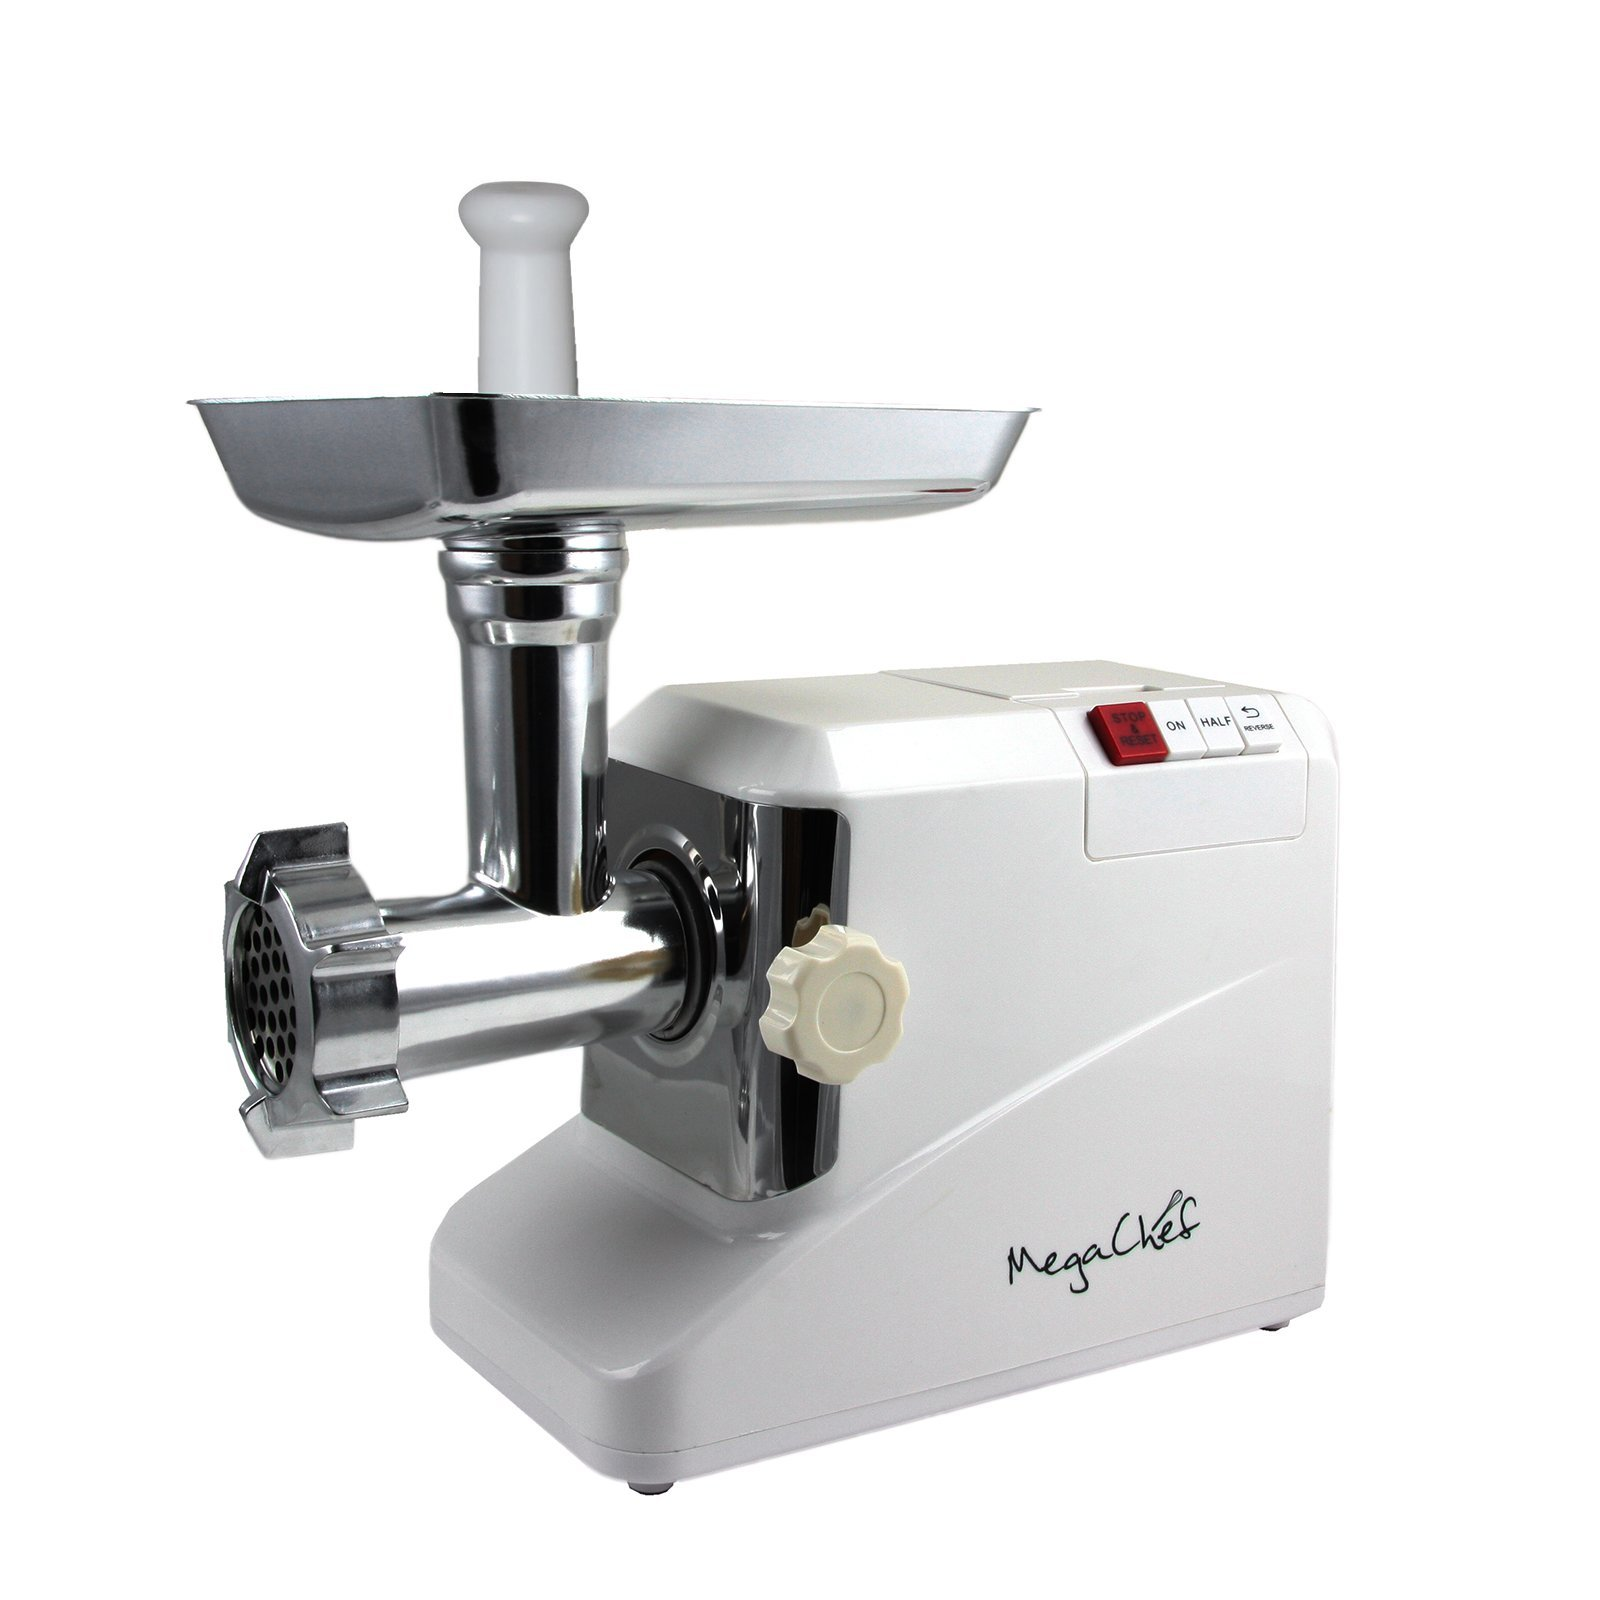 Megachef 1800W Automatic Meat Grinder for Household Use by Megachef